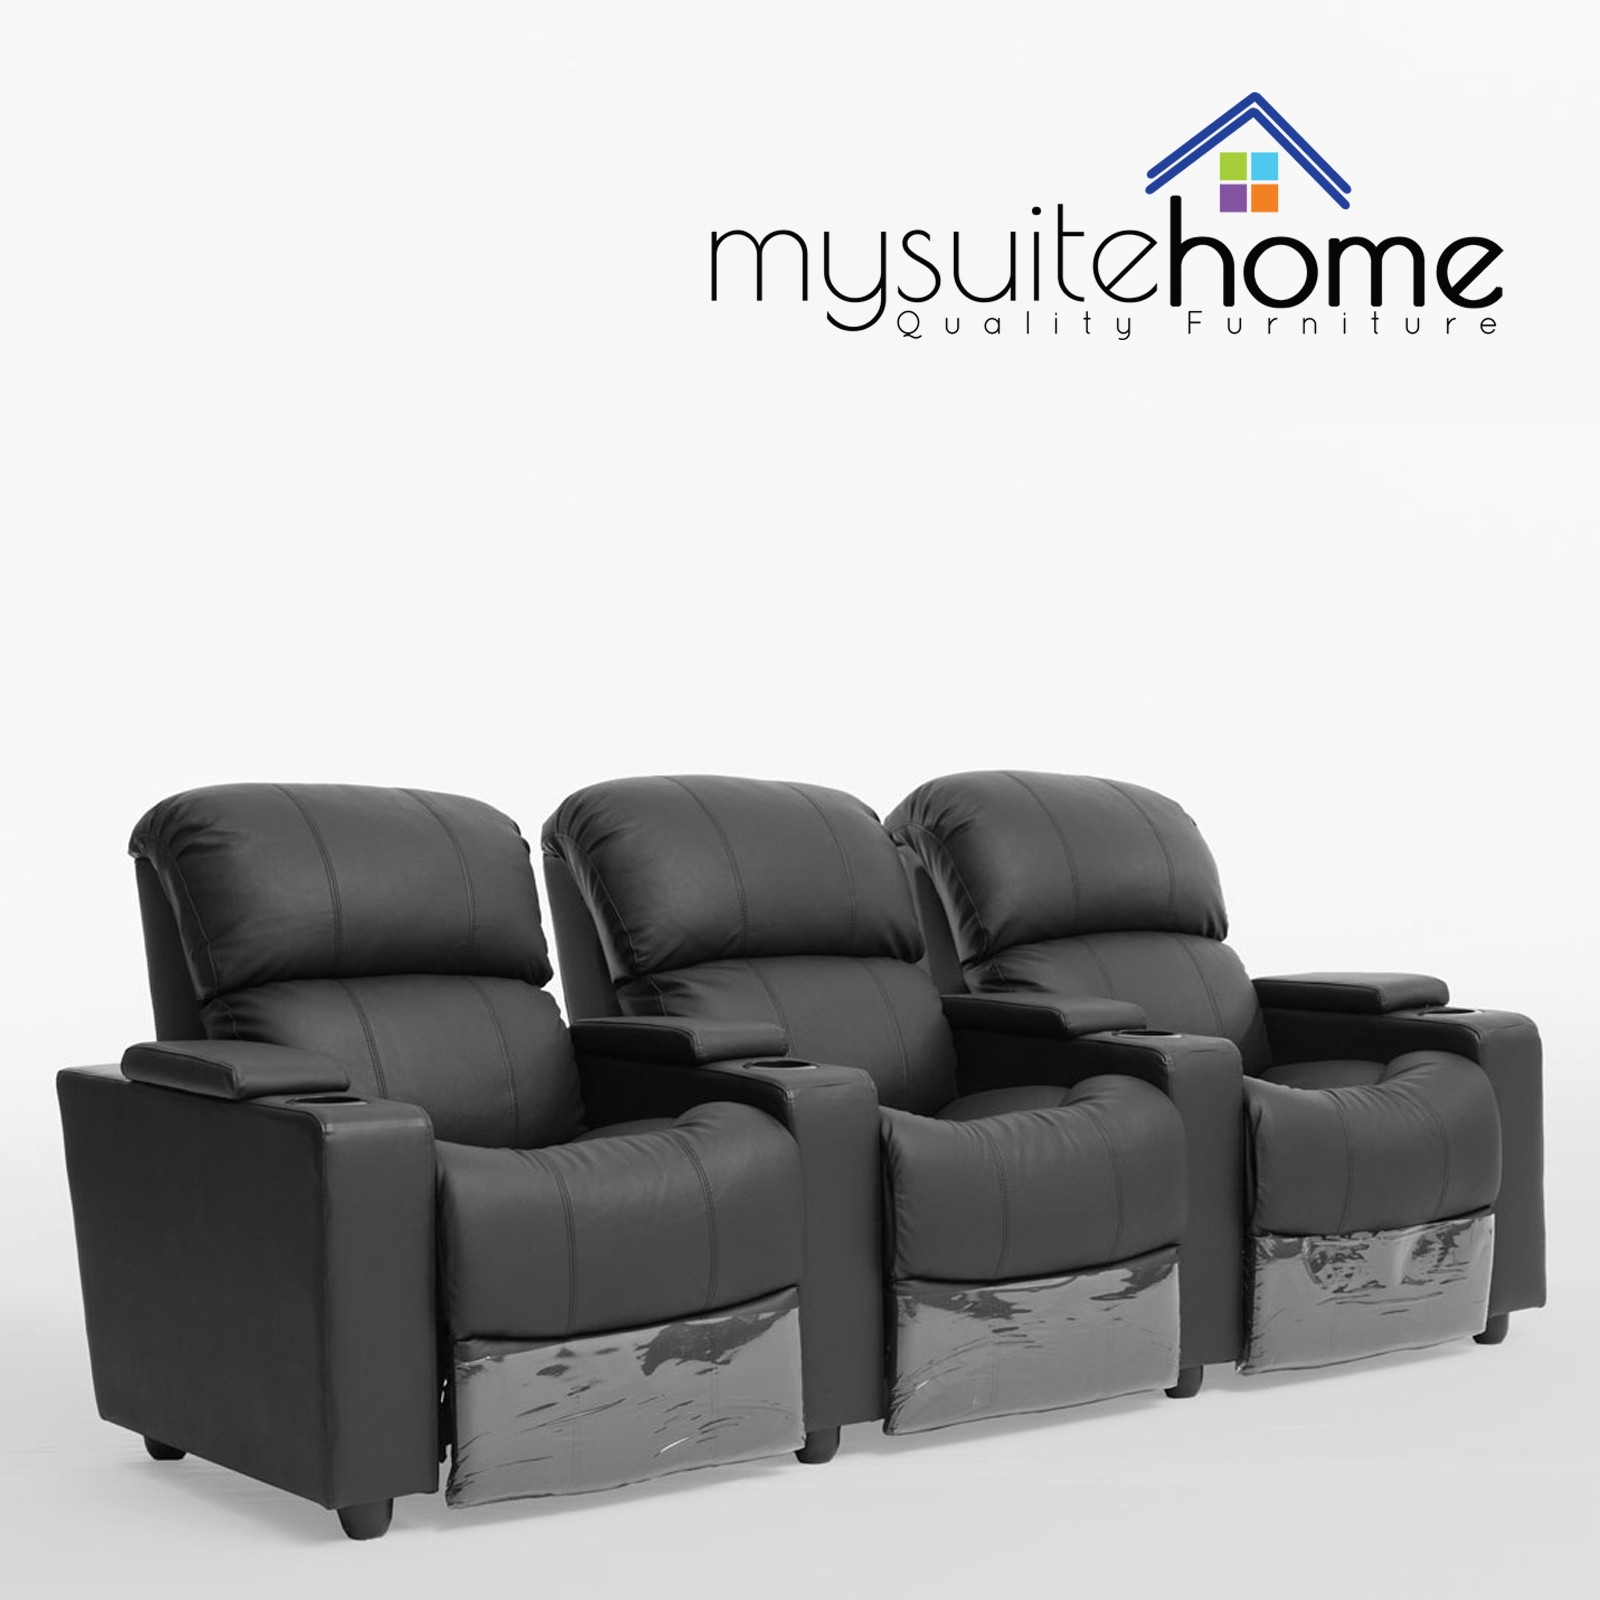 Sophie Brand New Leather 3 Seater Recliner Home Theater Entertainment Lounge